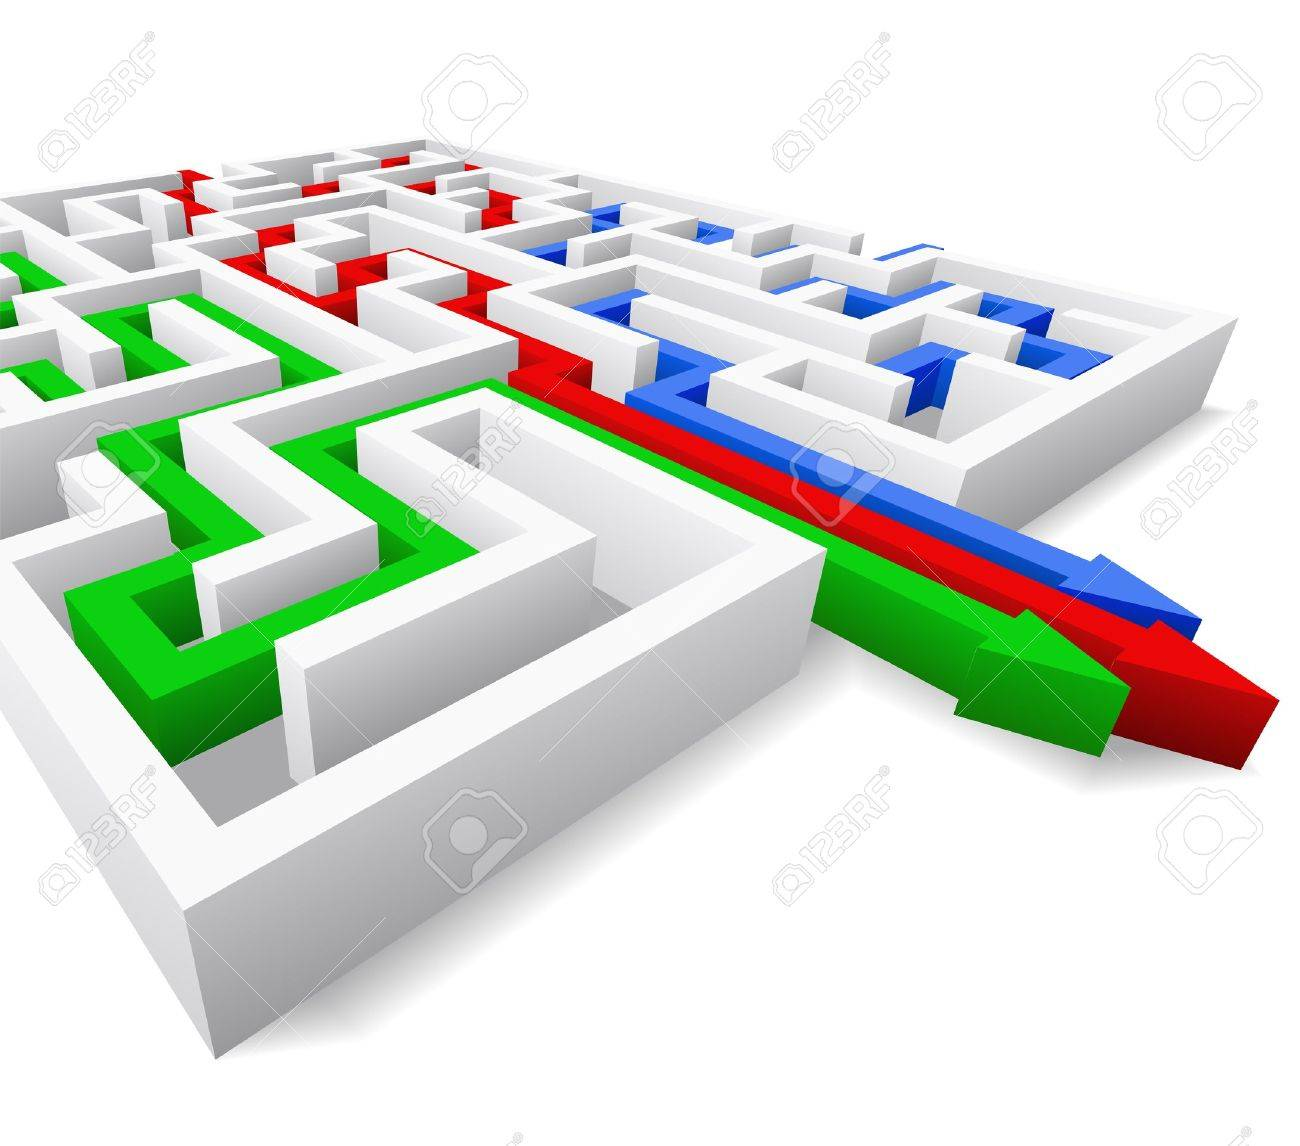 Maze and colored arrows are shown in the image. Stock Vector - 12067458